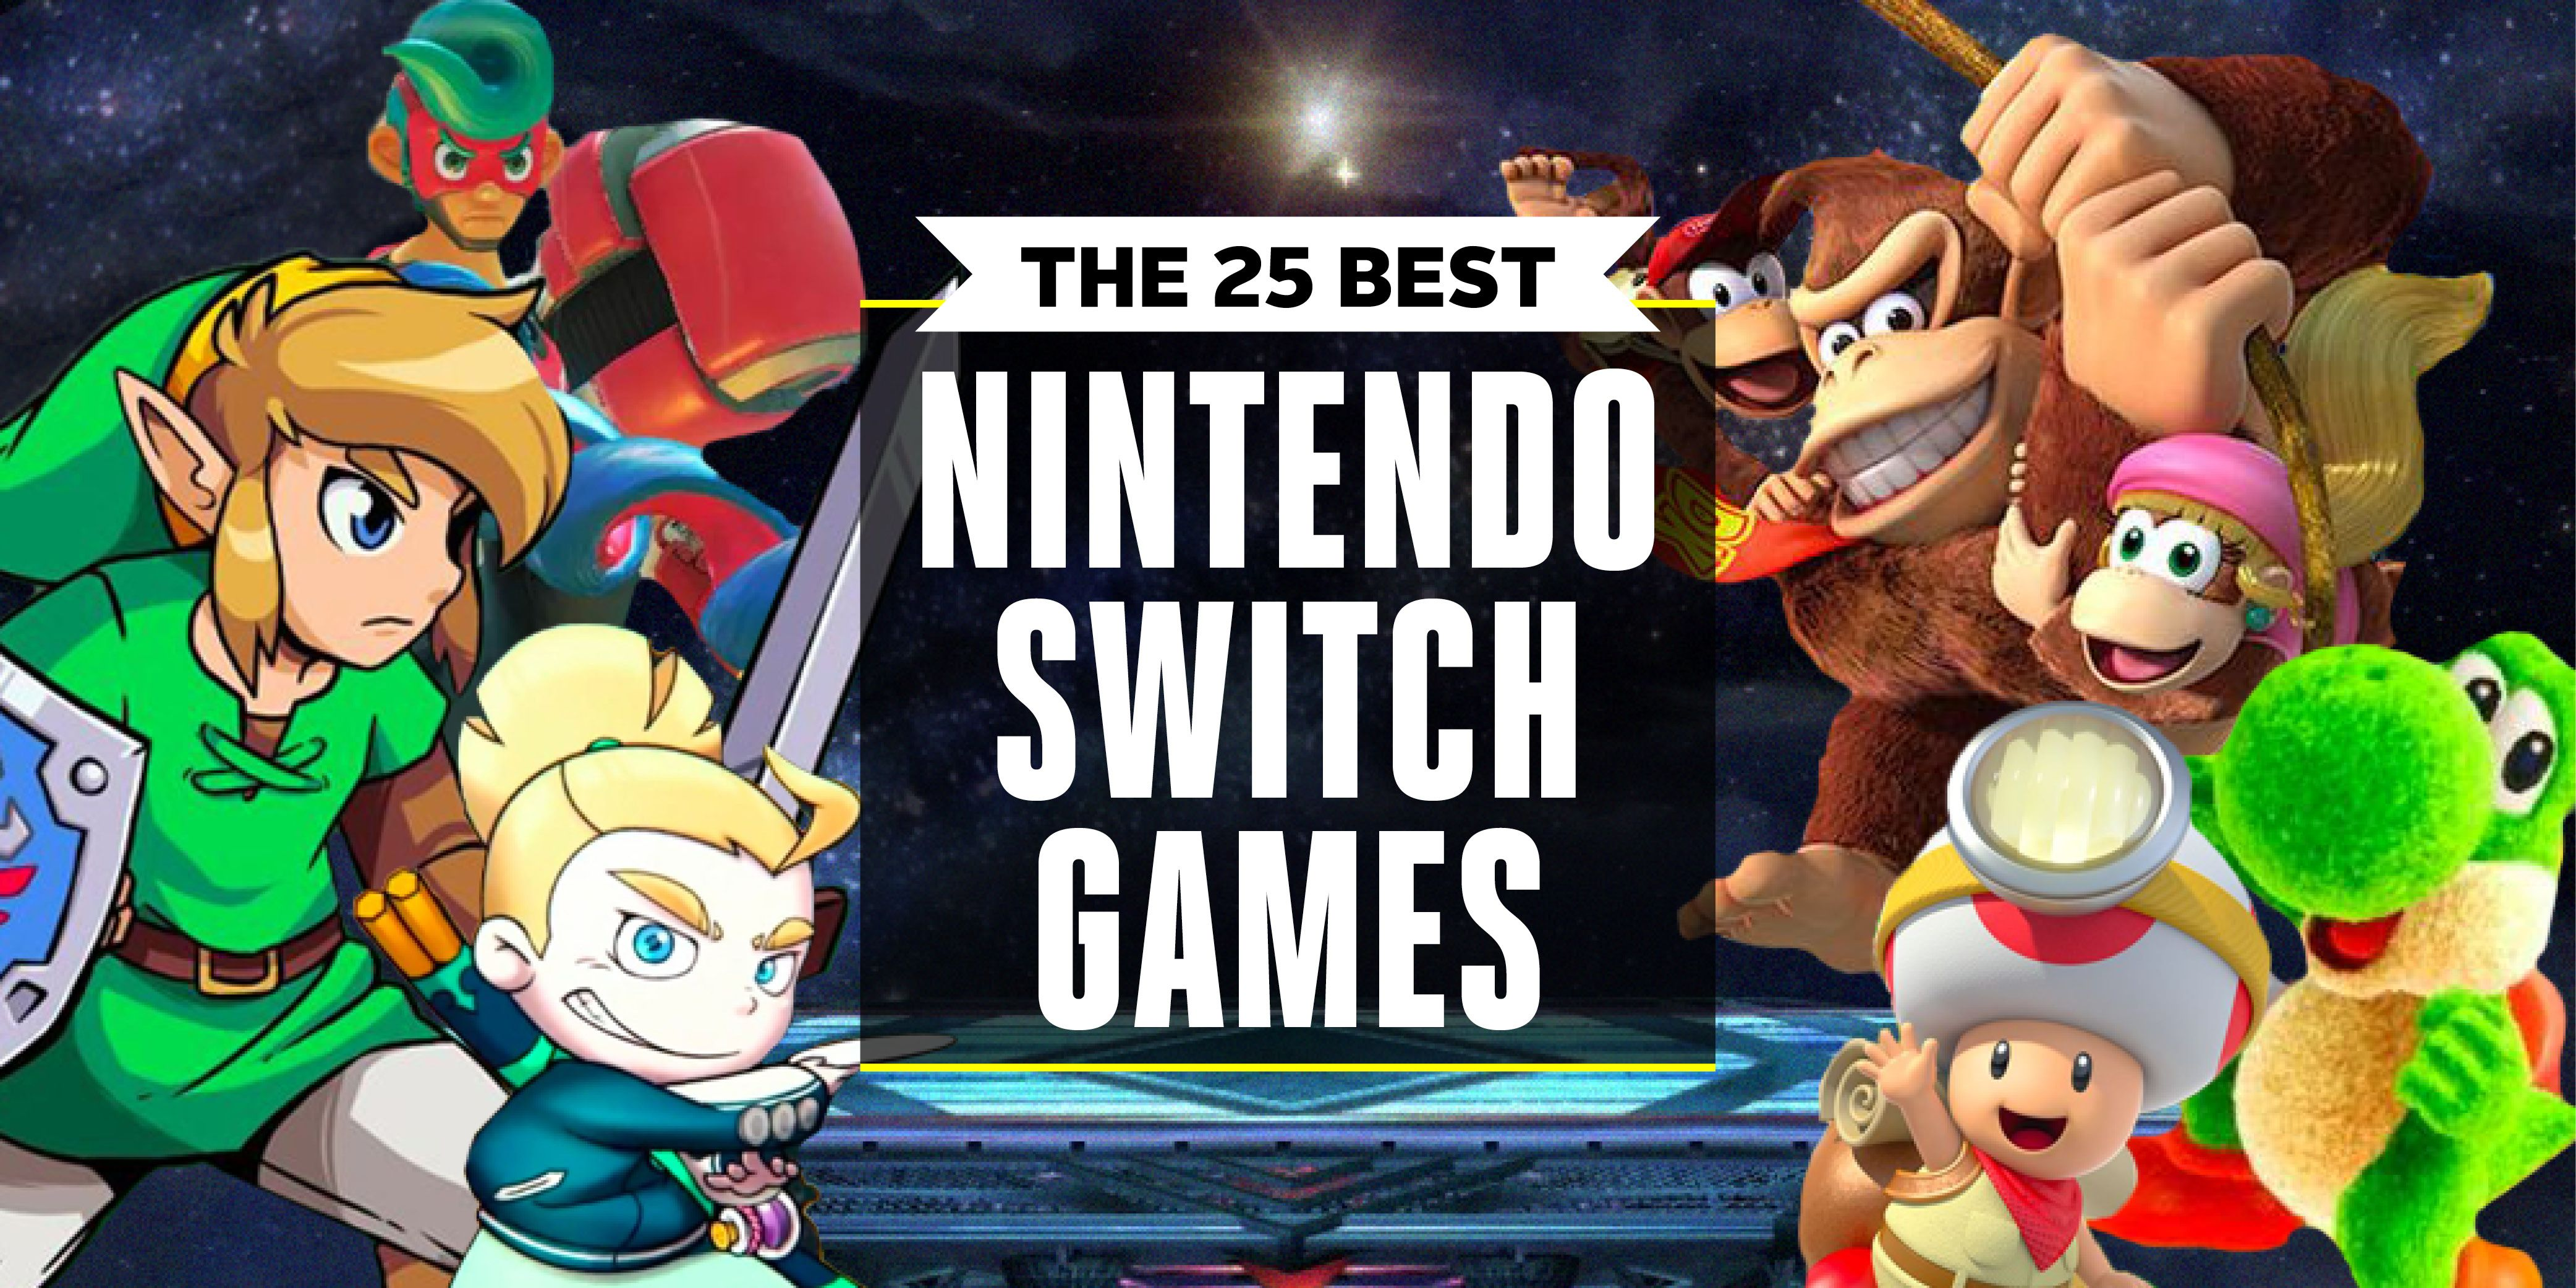 25 Best Nintendo Switch Games 2019 | Nintendo Switch Game Reviews